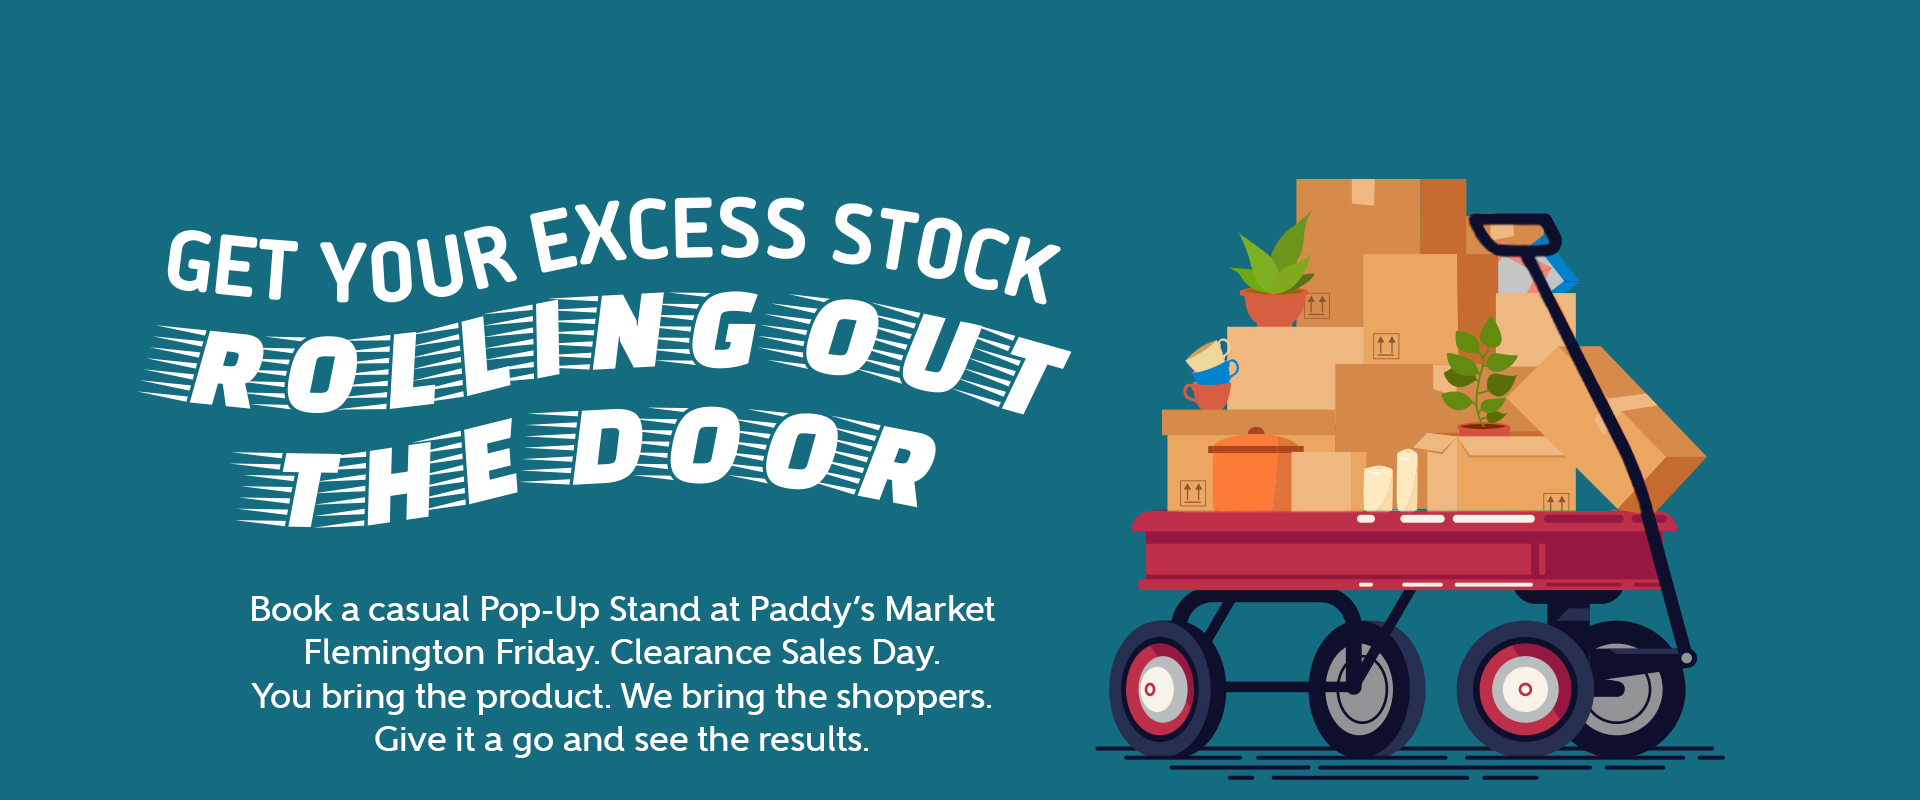 Clear Your Stock at Paddy's Markets Flemington Friday